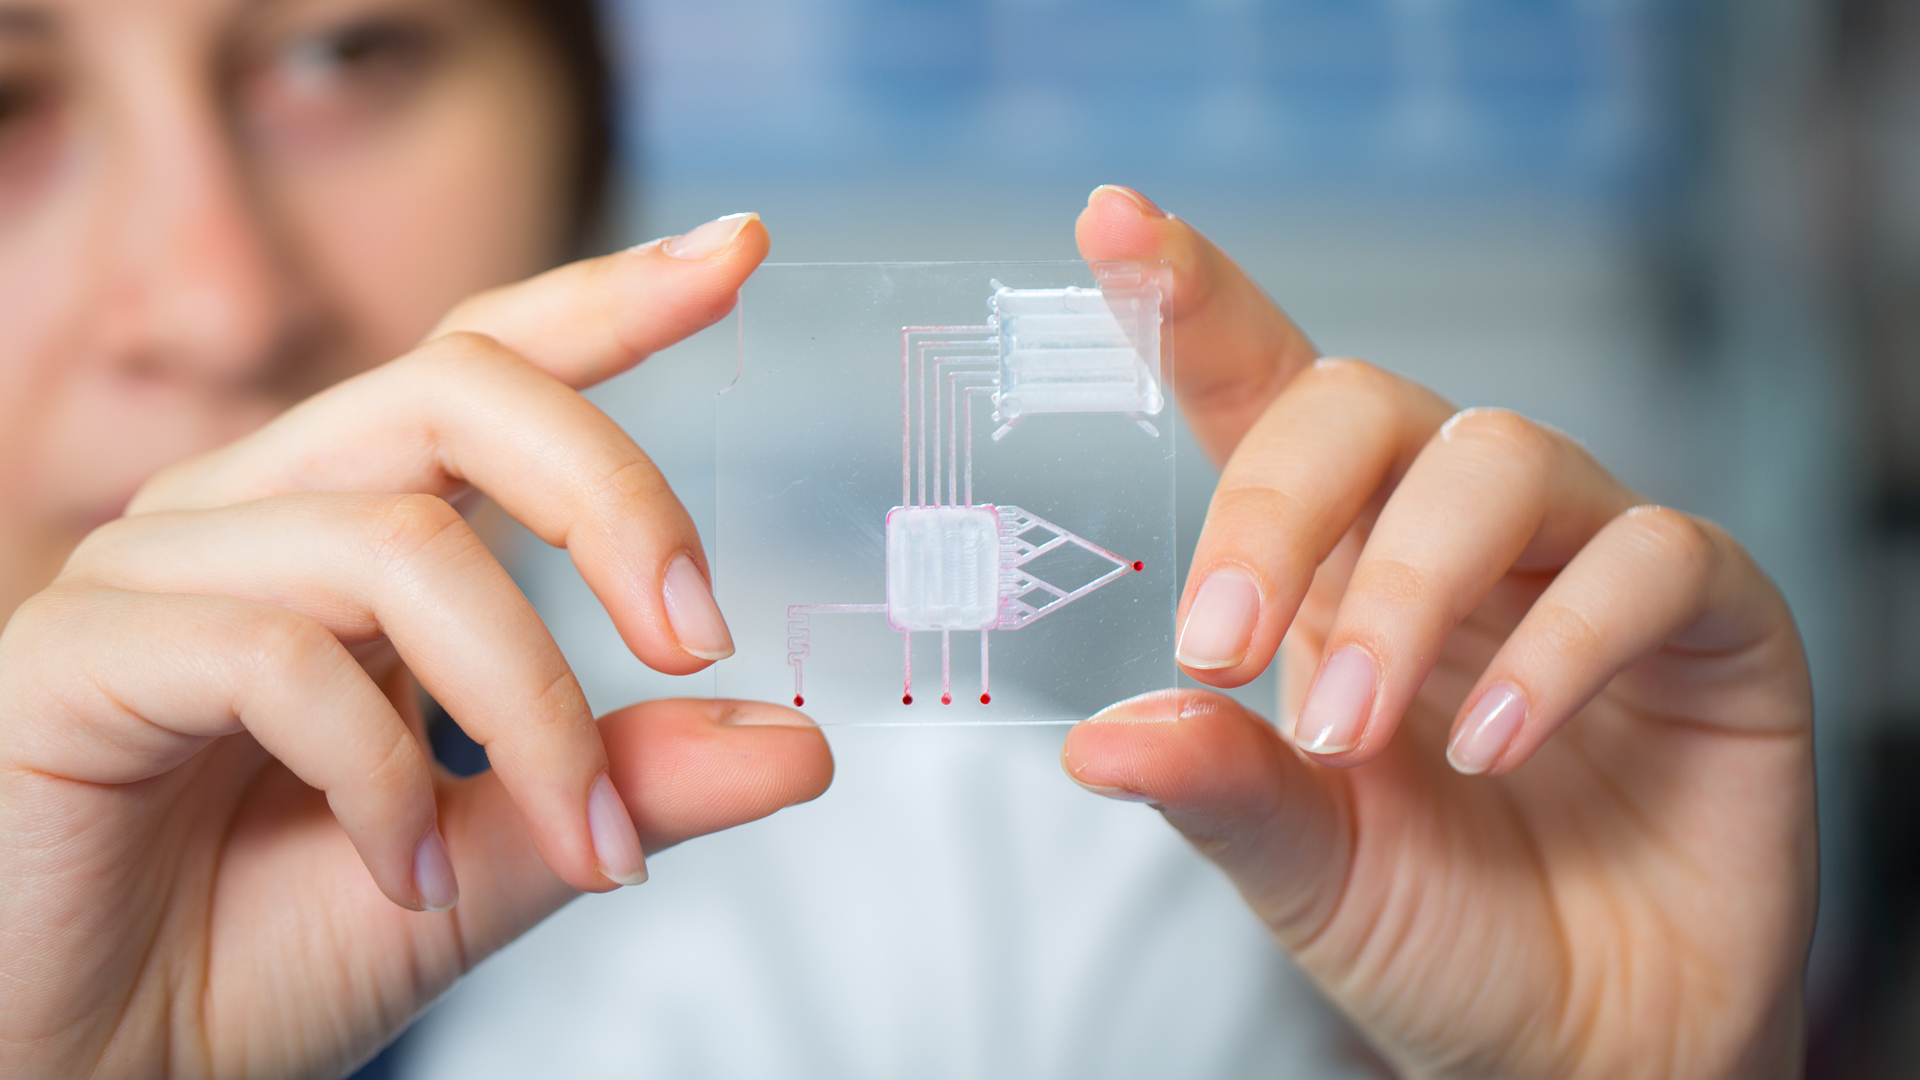 Two hands holding a biochip with the person's face in the background